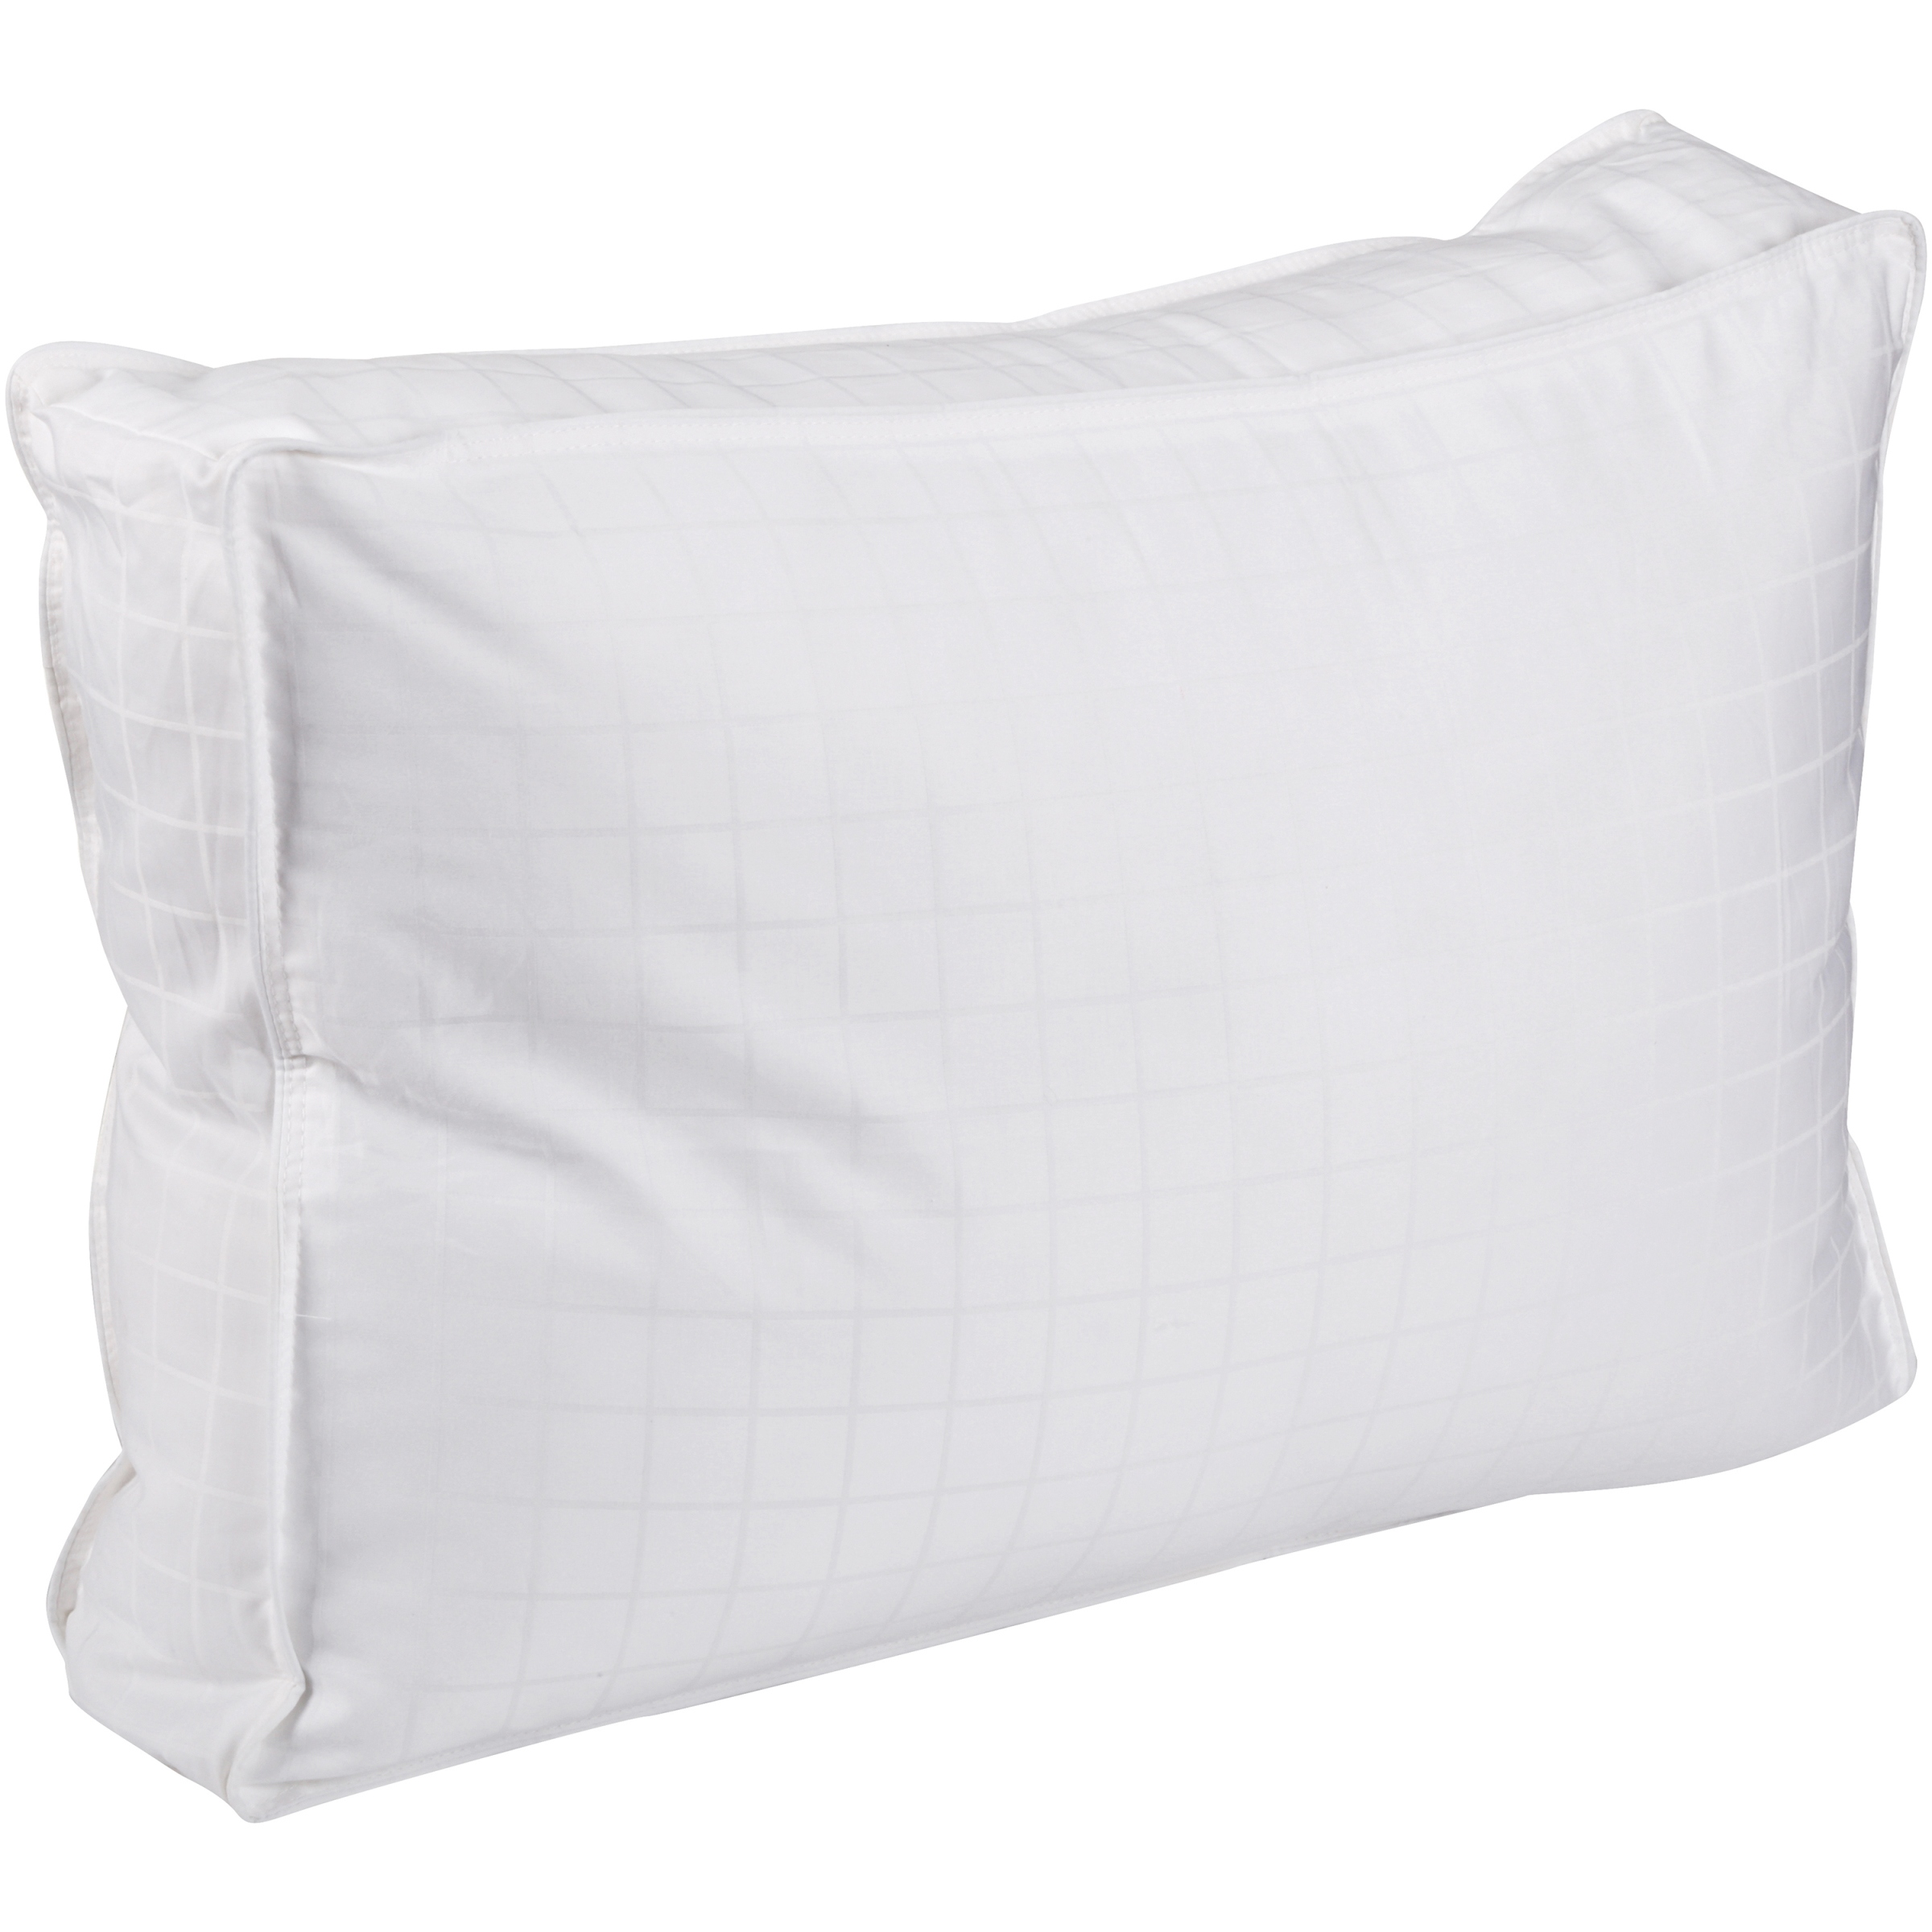 Standard Bed Pillows Beyond Down 300 Thread Count Side Sleeper Standard Bed Pillow